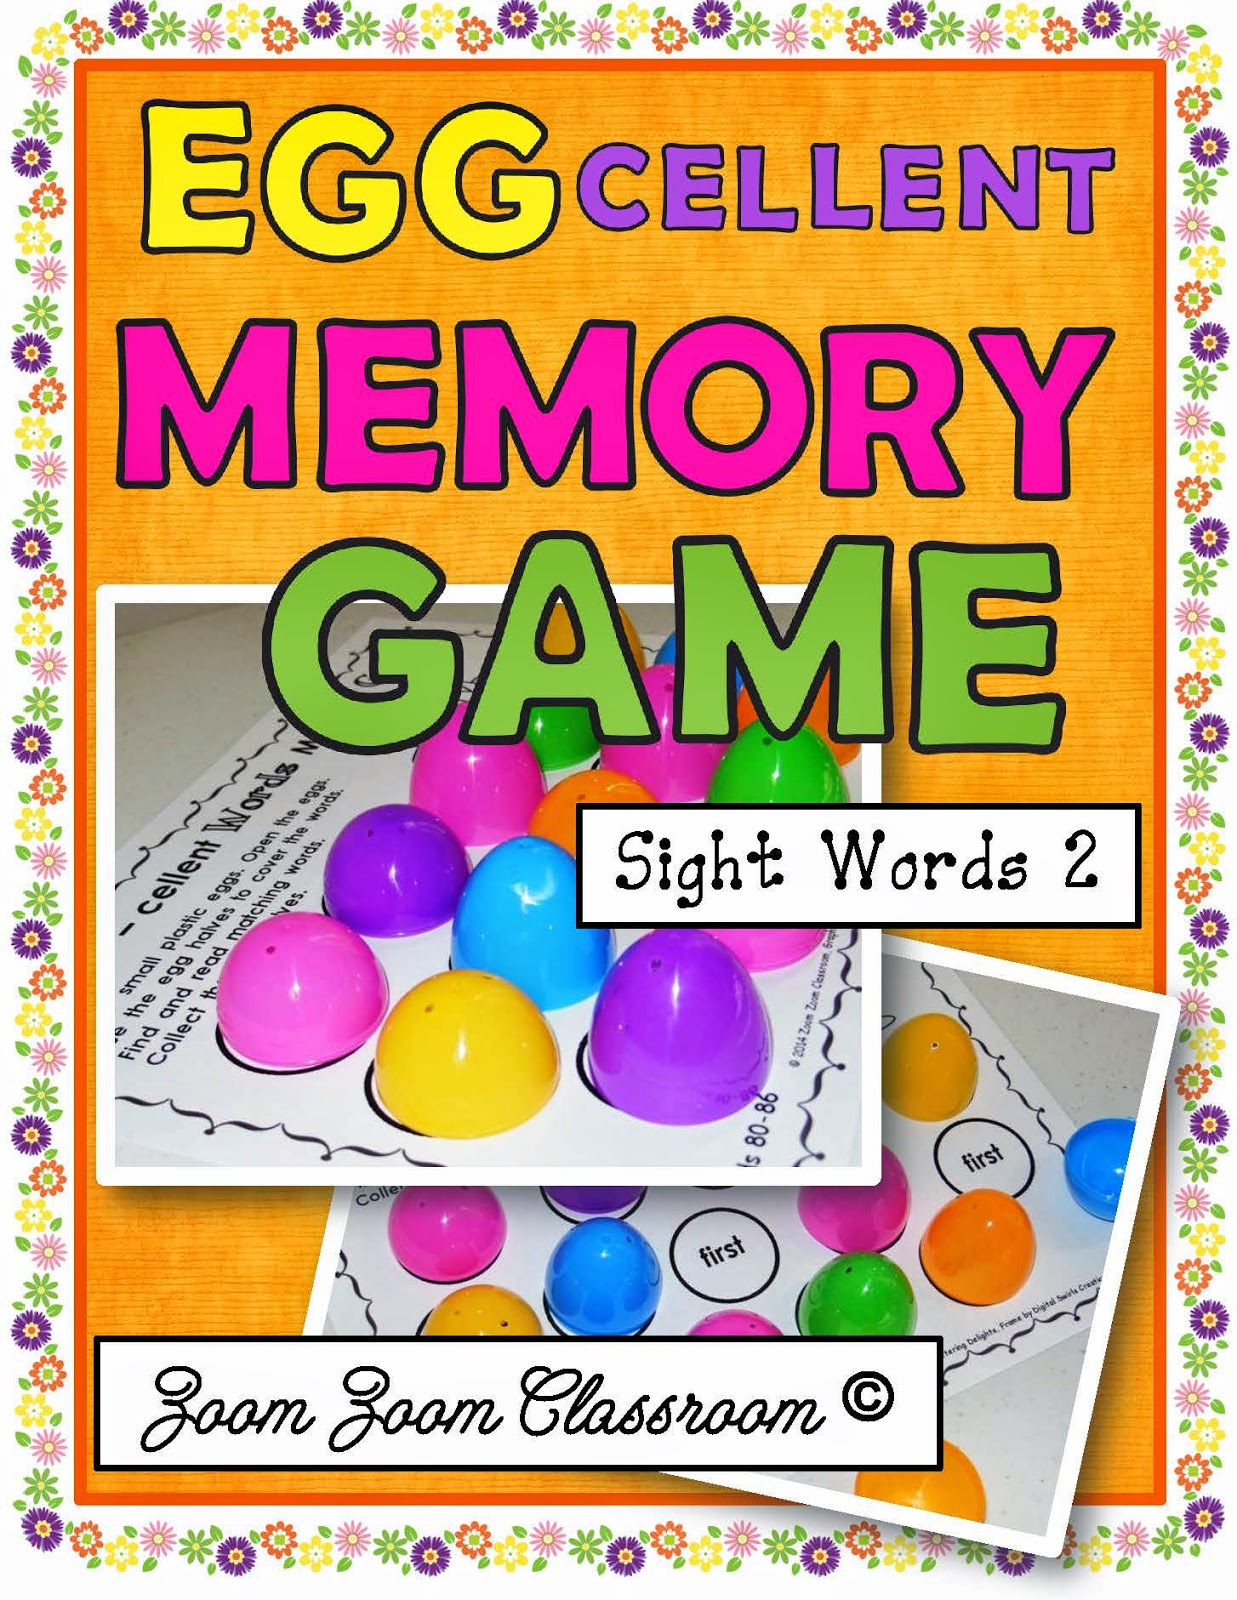 http://www.teacherspayteachers.com/Product/Sight-Words-Egg-Hunt-Memory-Game-Words-51-100-1201306